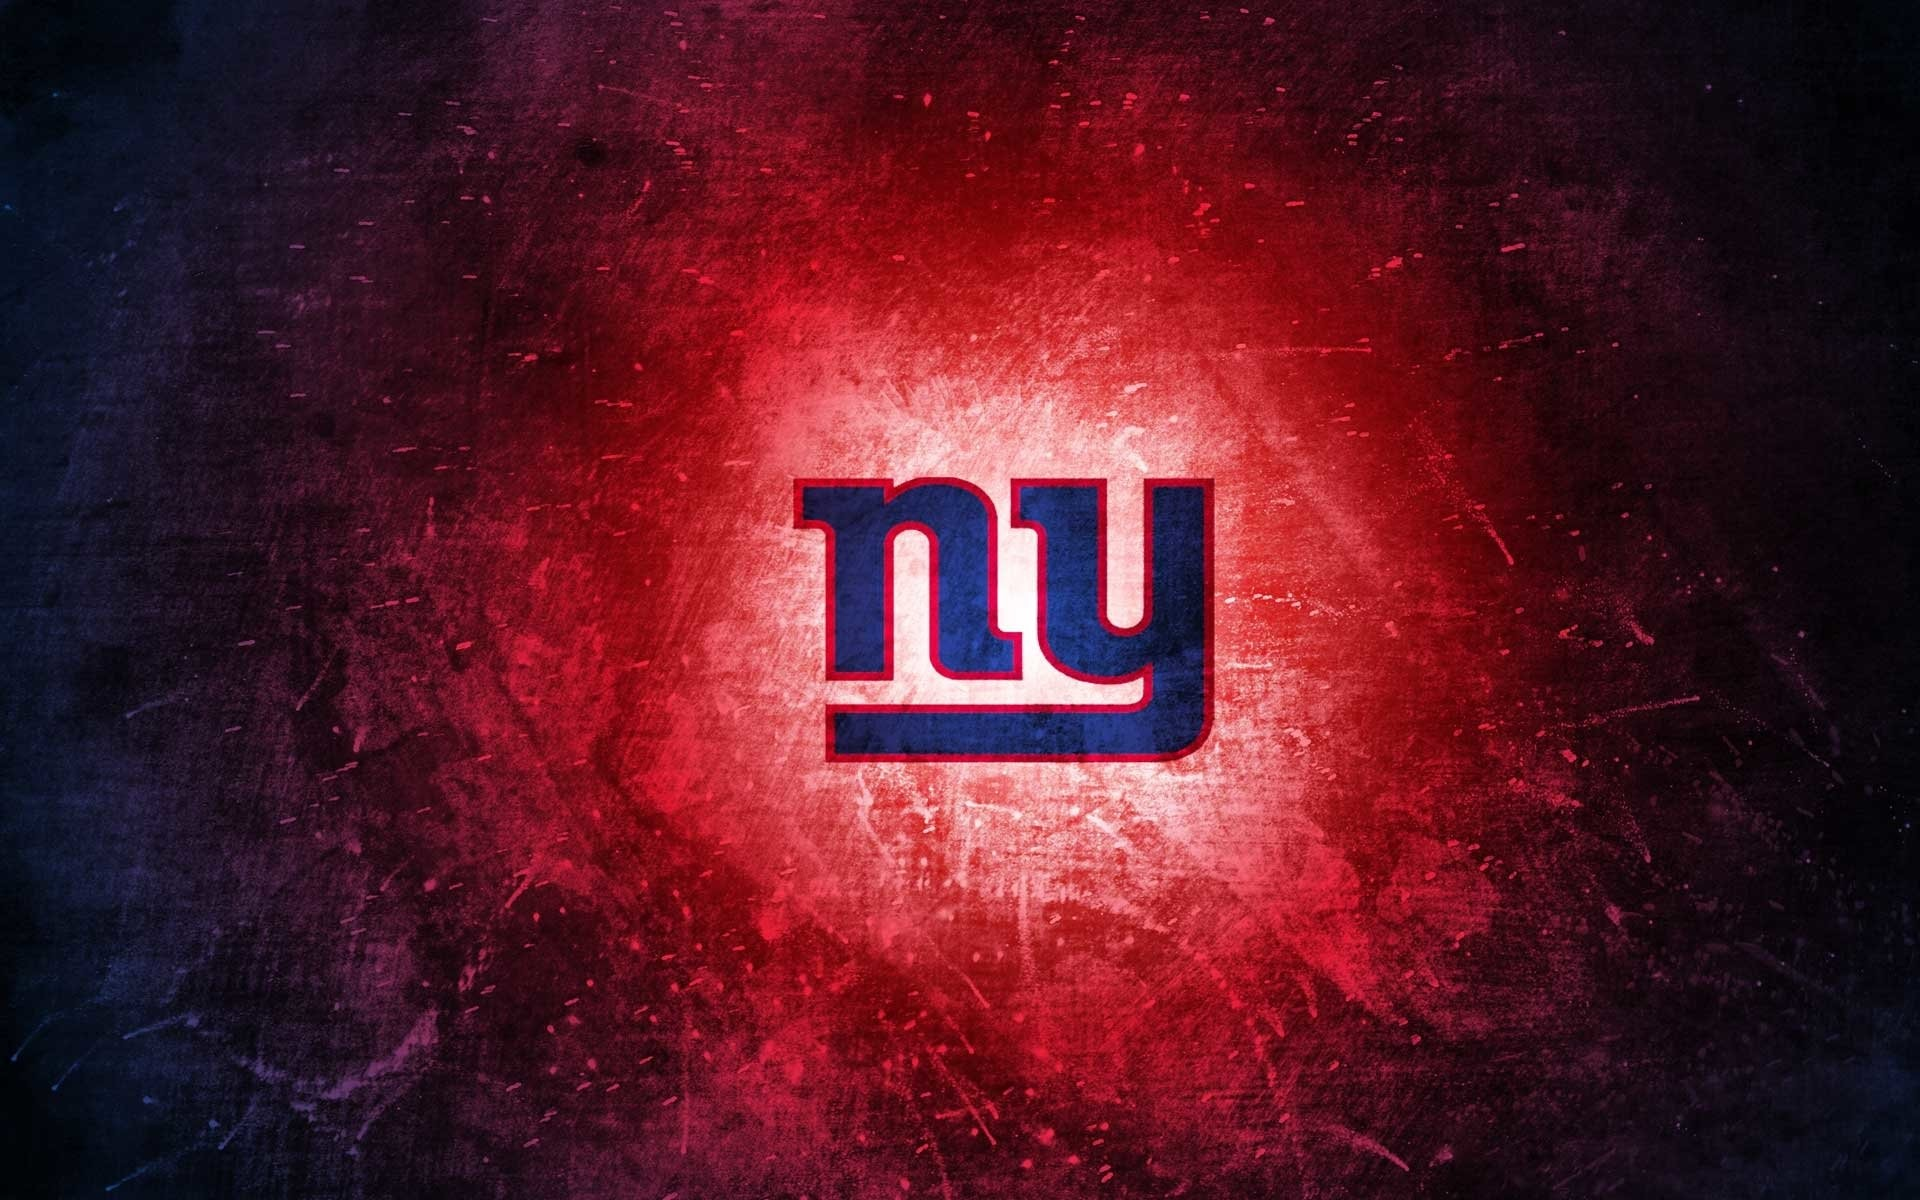 New york giants wallpaper download free beautiful wallpapers for hd voltagebd Images